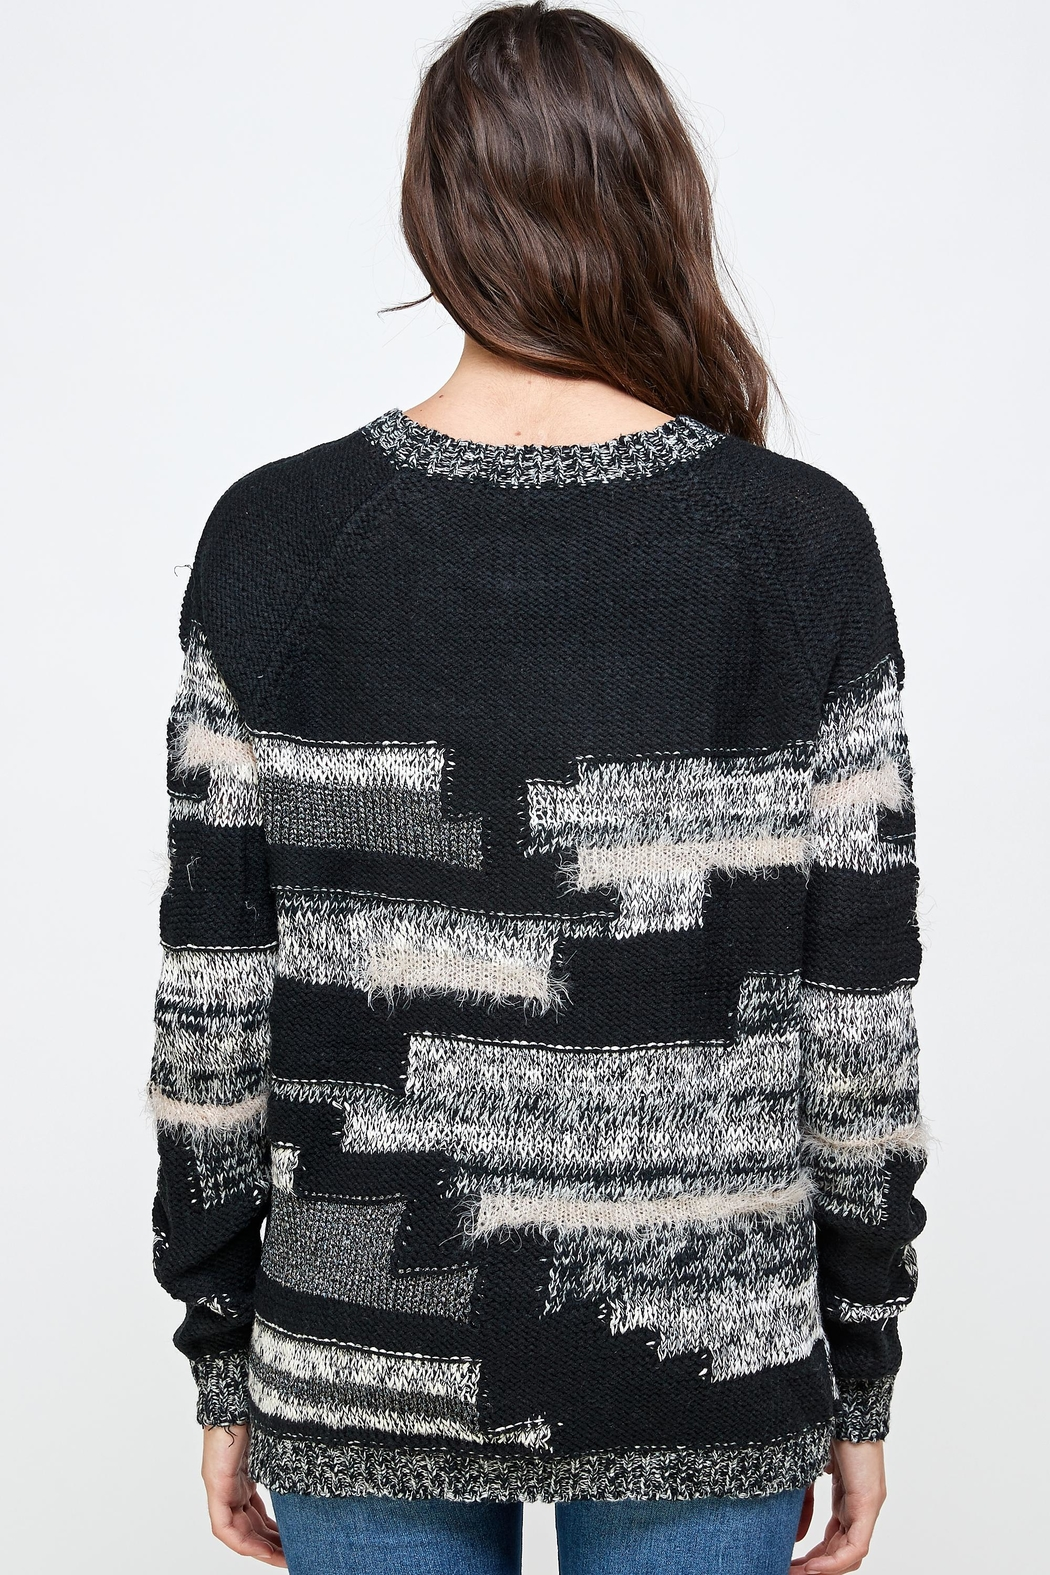 Kaii Multi Yarn Sweater Top - Side Cropped Image